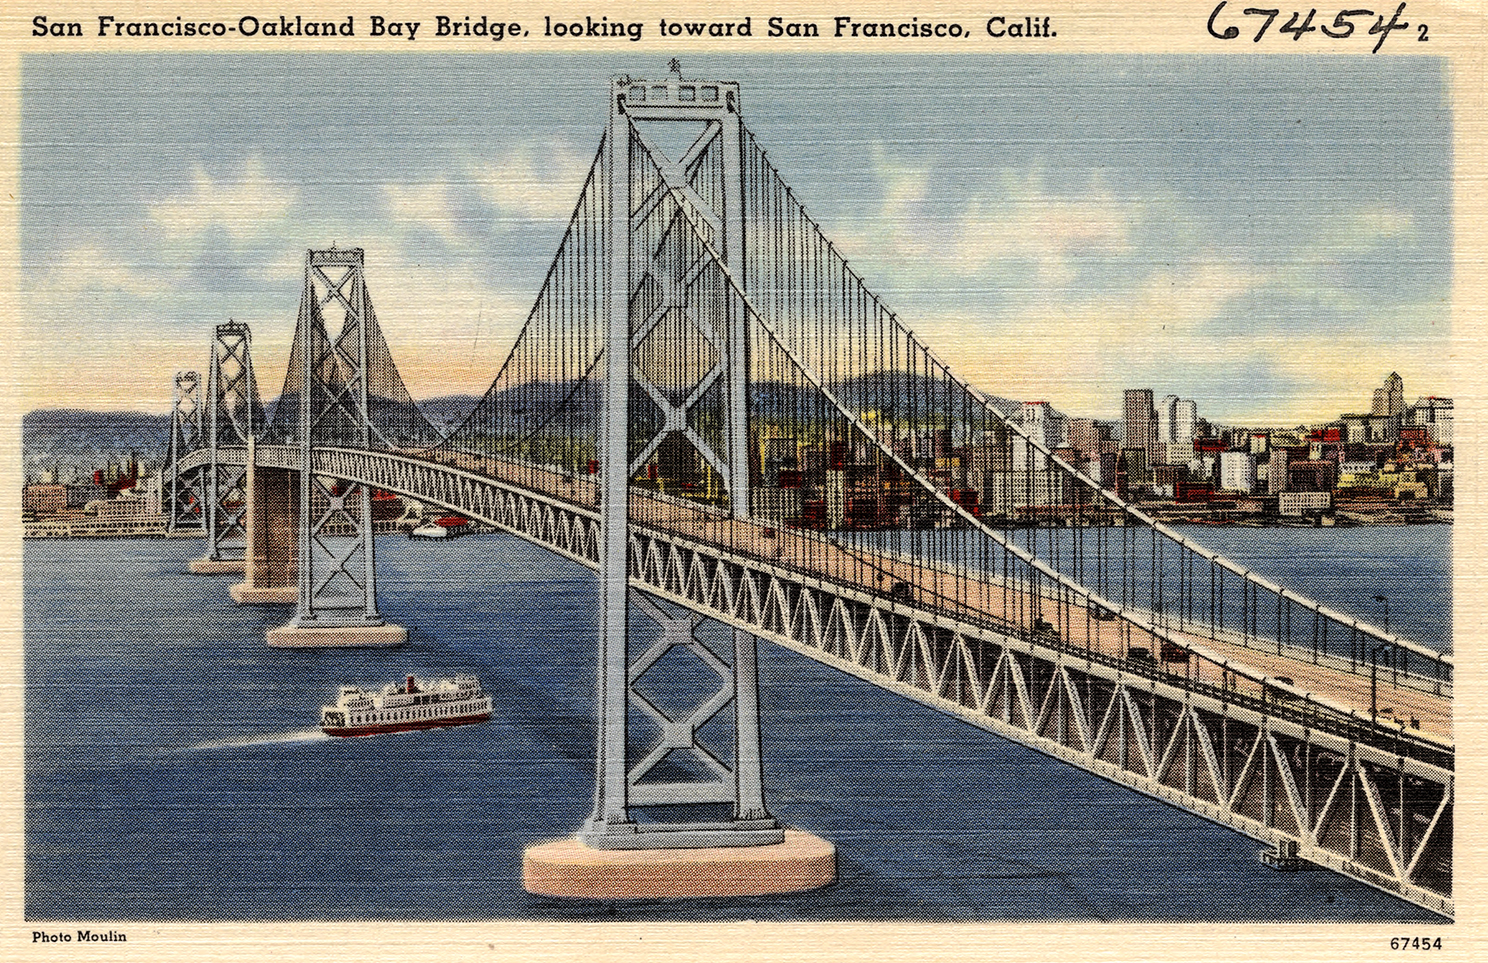 san_francisco-oakland_bay_bridge_looking_toward_san_francisco_calif_67454